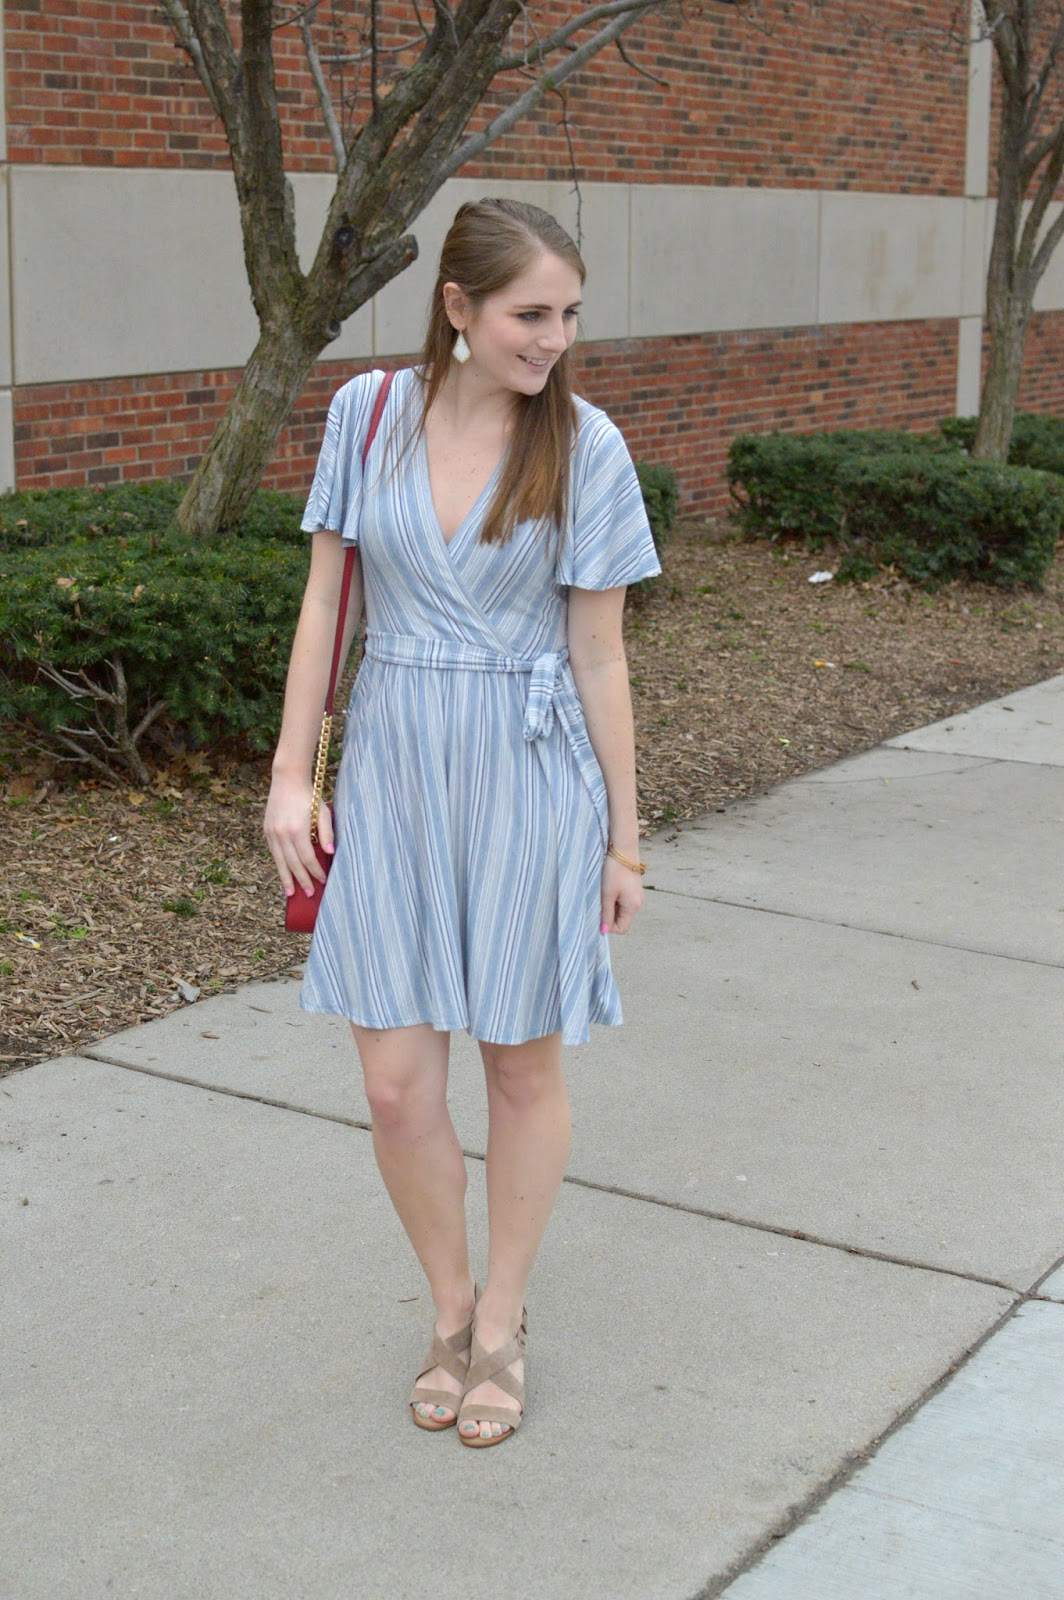 spring dresses for under 100: comfy and cute dresses for spring or summer